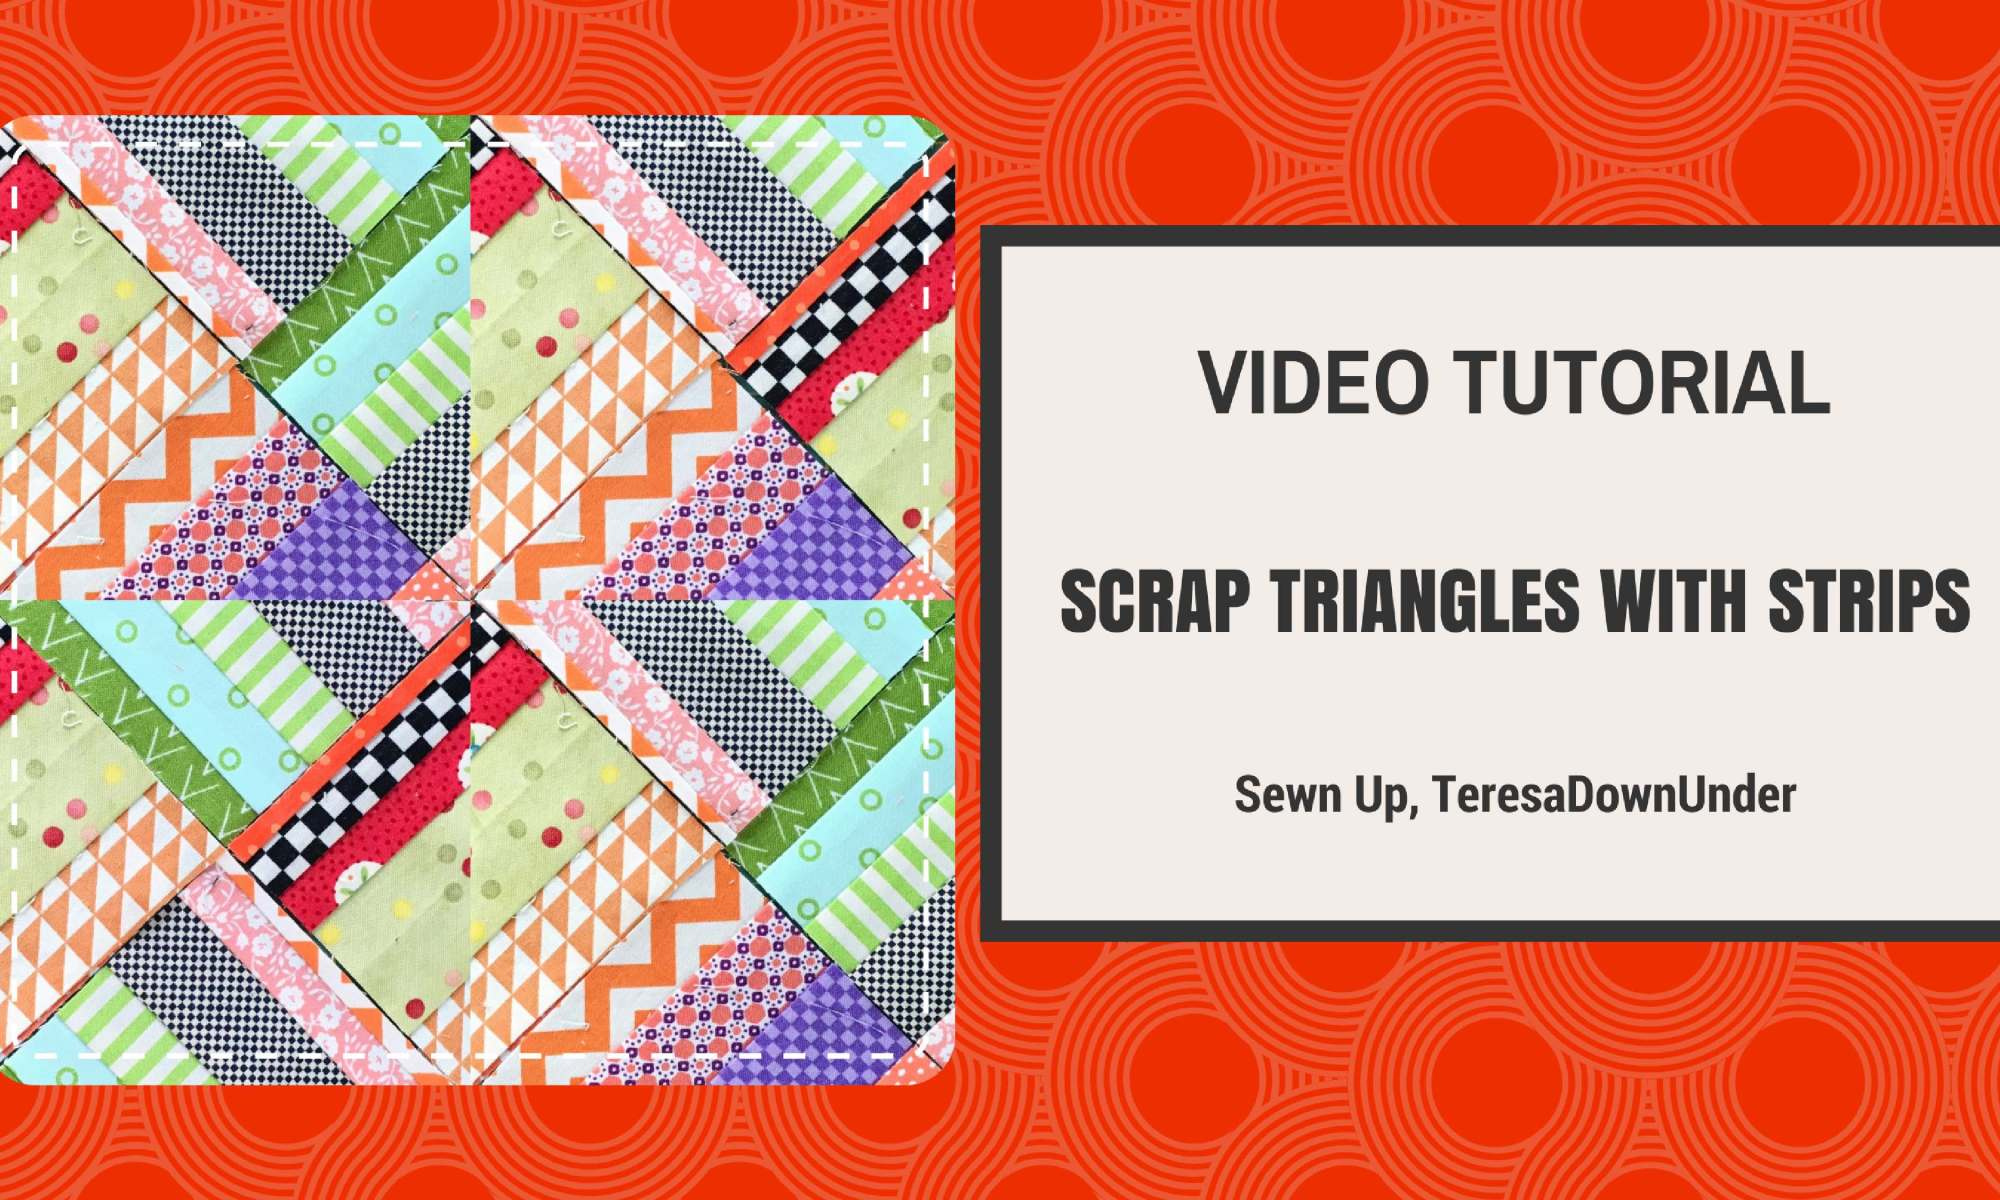 Video tutorial: Scrap triangles with strips